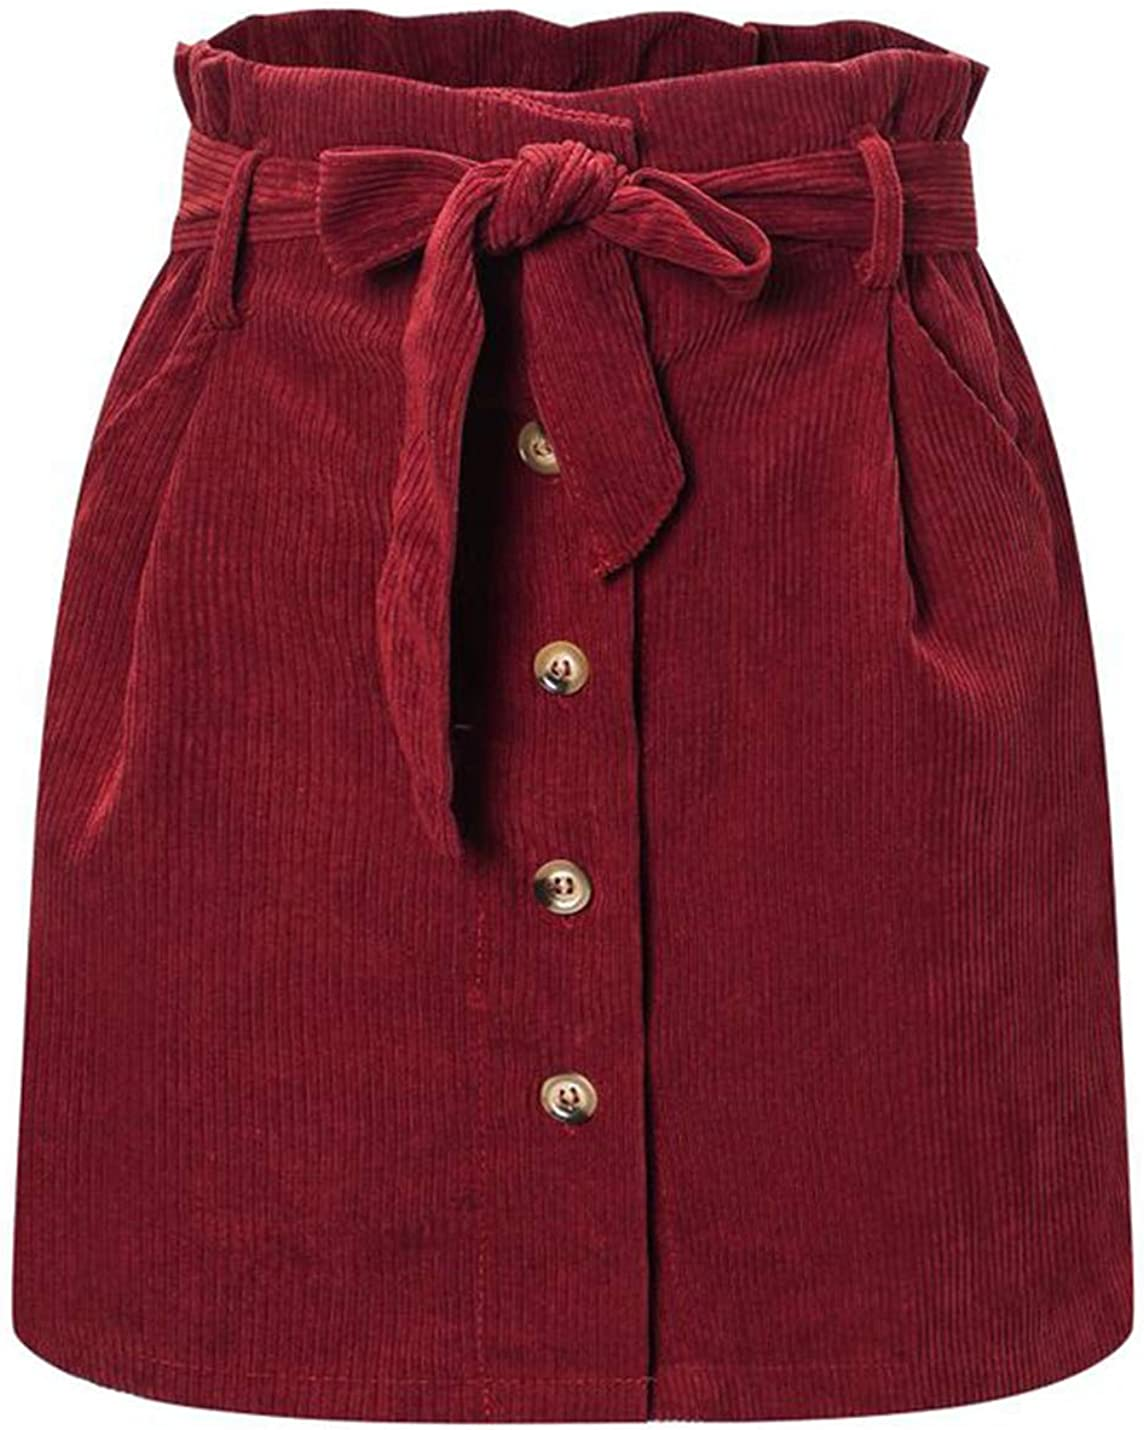 Uaneo Womens Corduroy Casual Paperbag Belted High Waist Button Front Mini Skirts(Burgundy-XL)